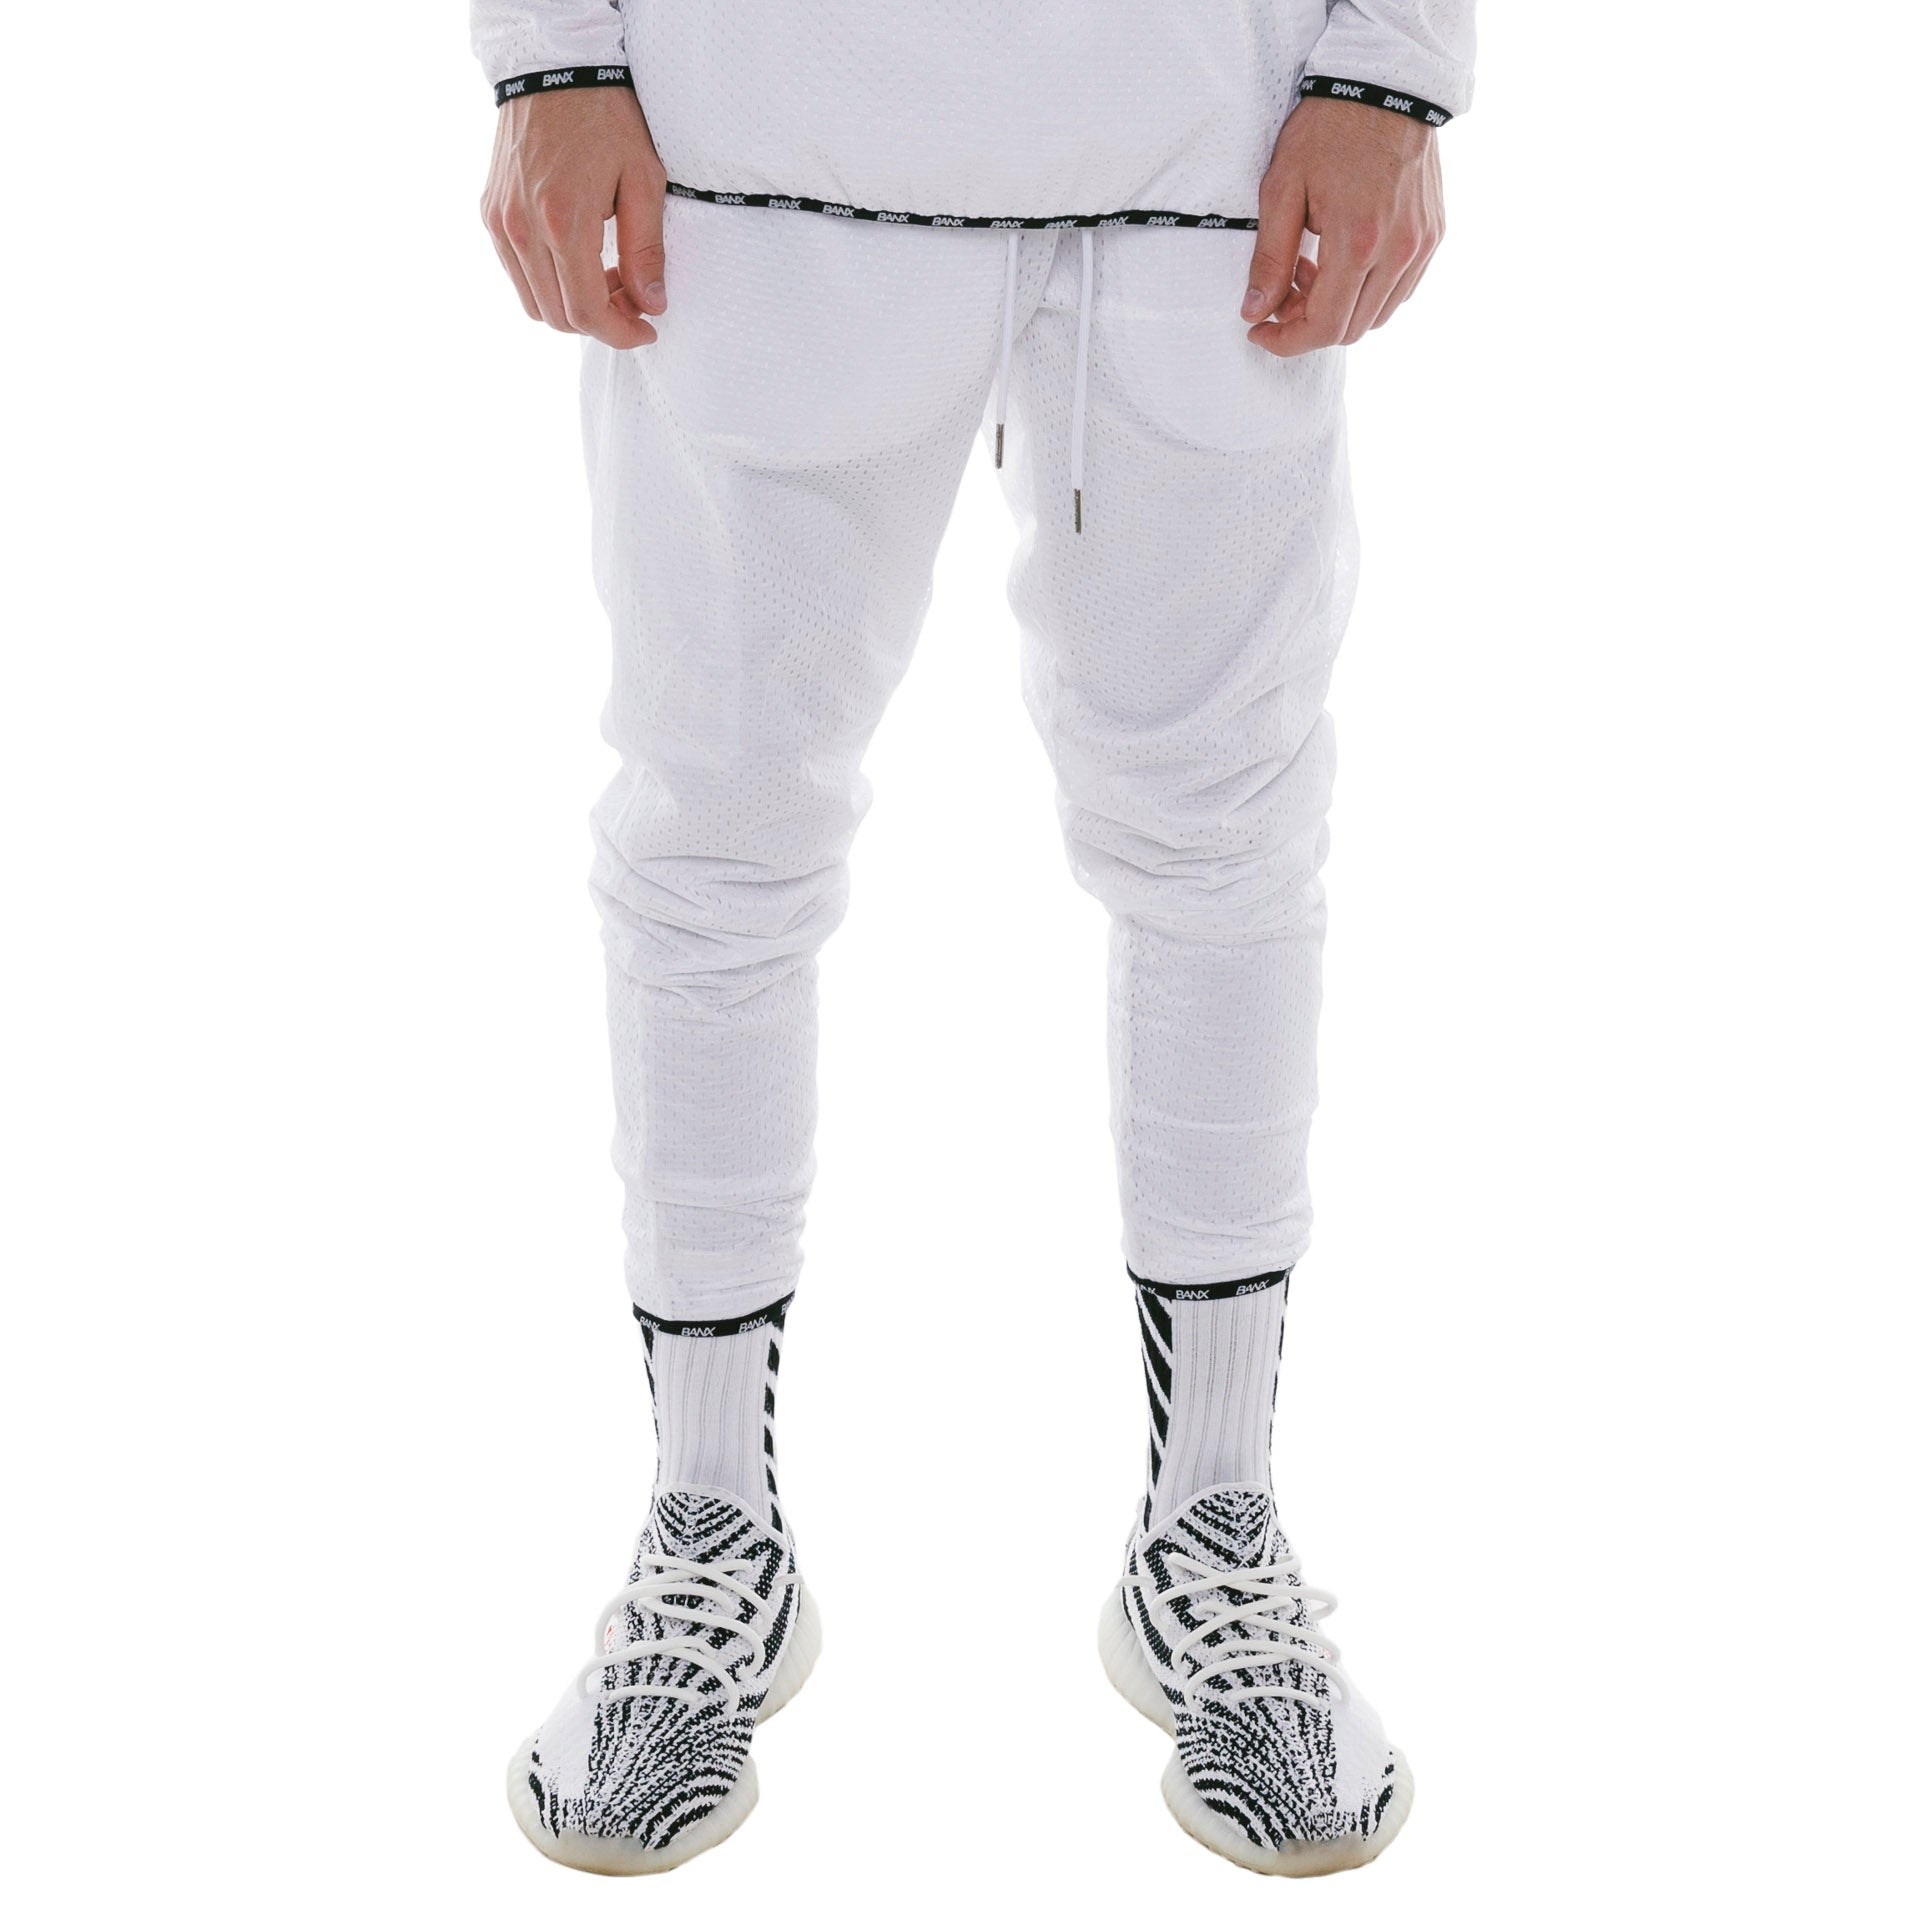 TRACKPANTS - WHITE (REVERSIBLE)